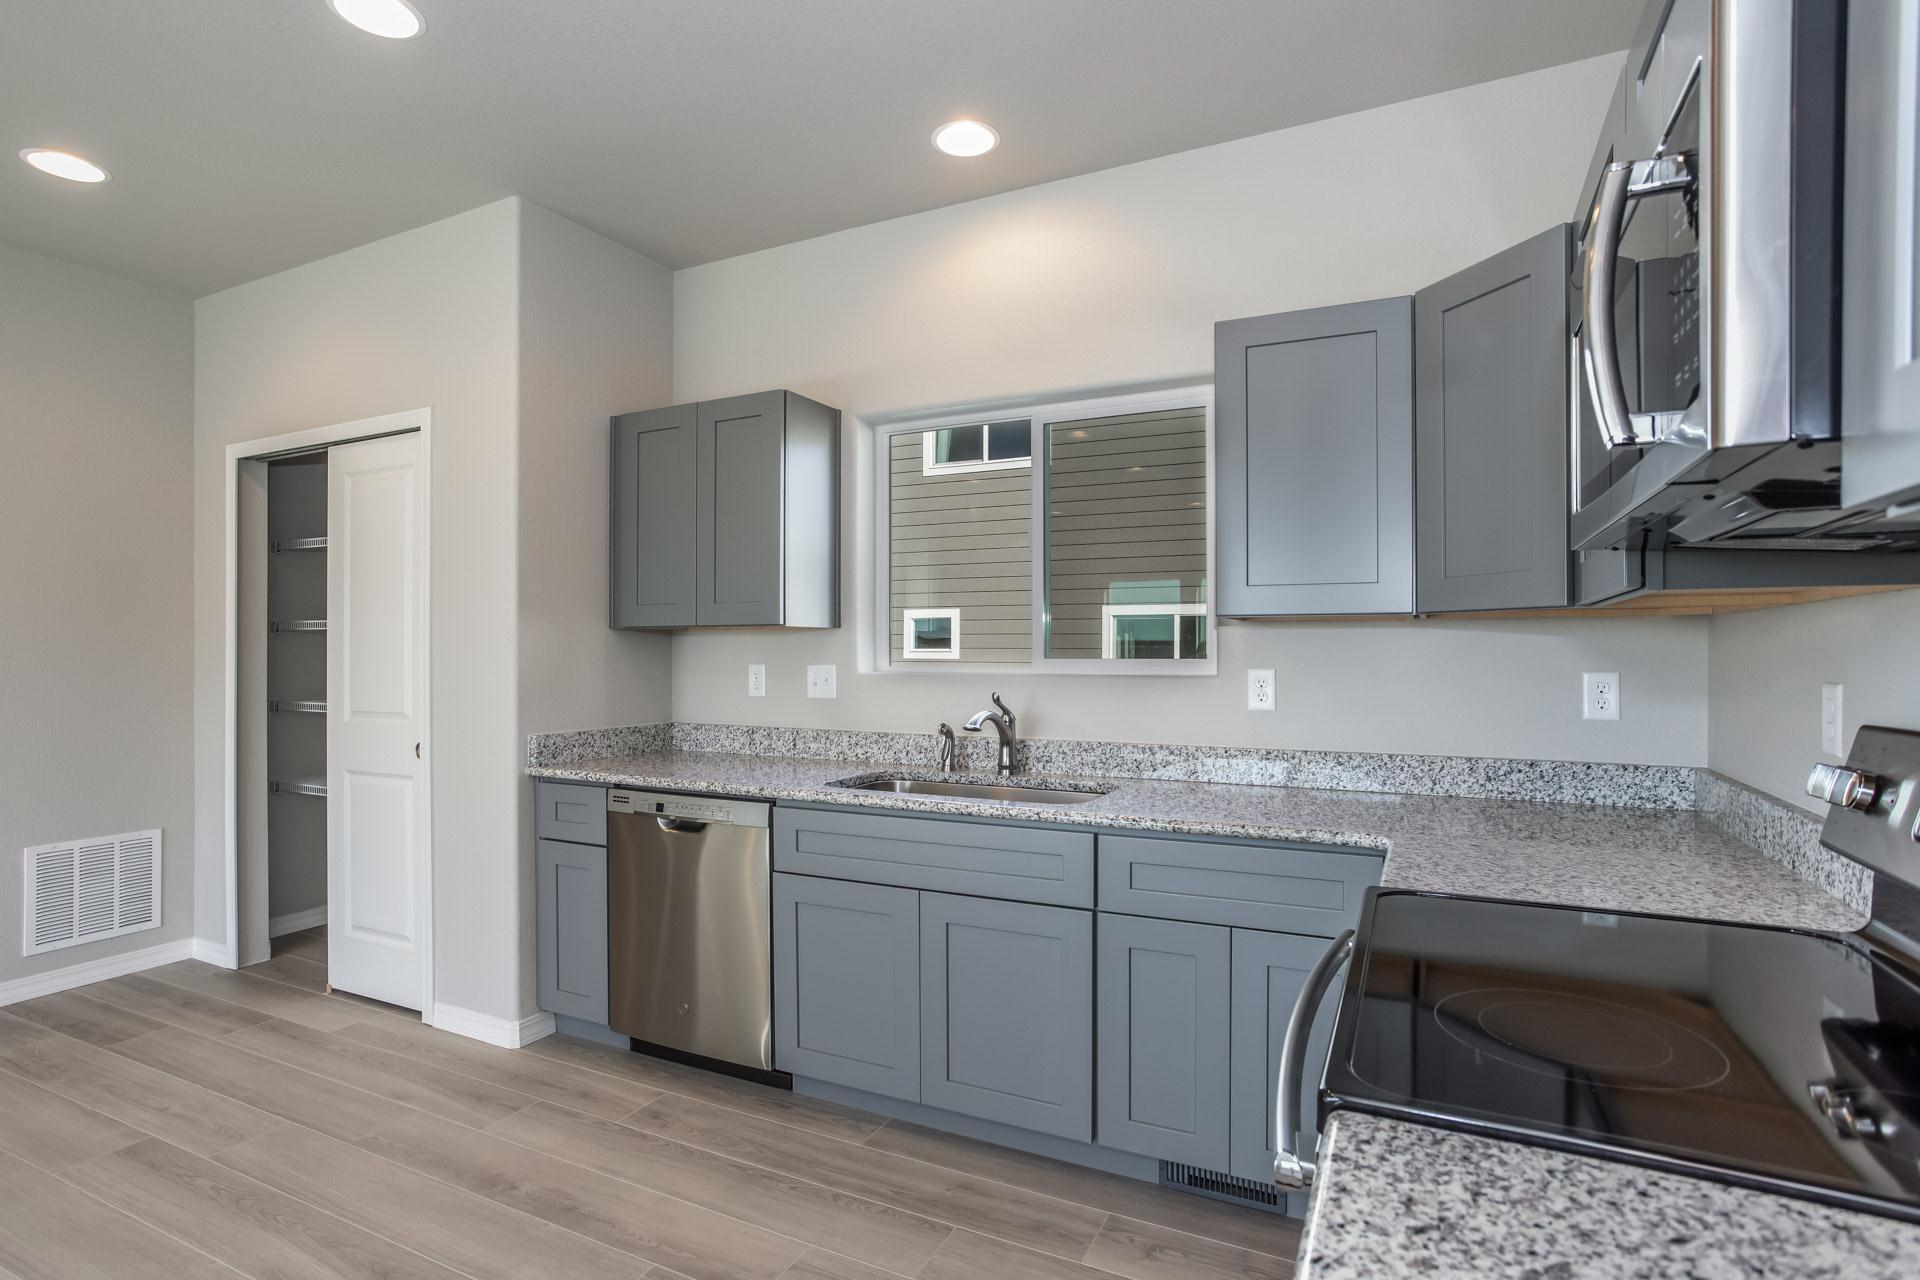 Kitchen featured in the Antero By Challenger Homes in Colorado Springs, CO